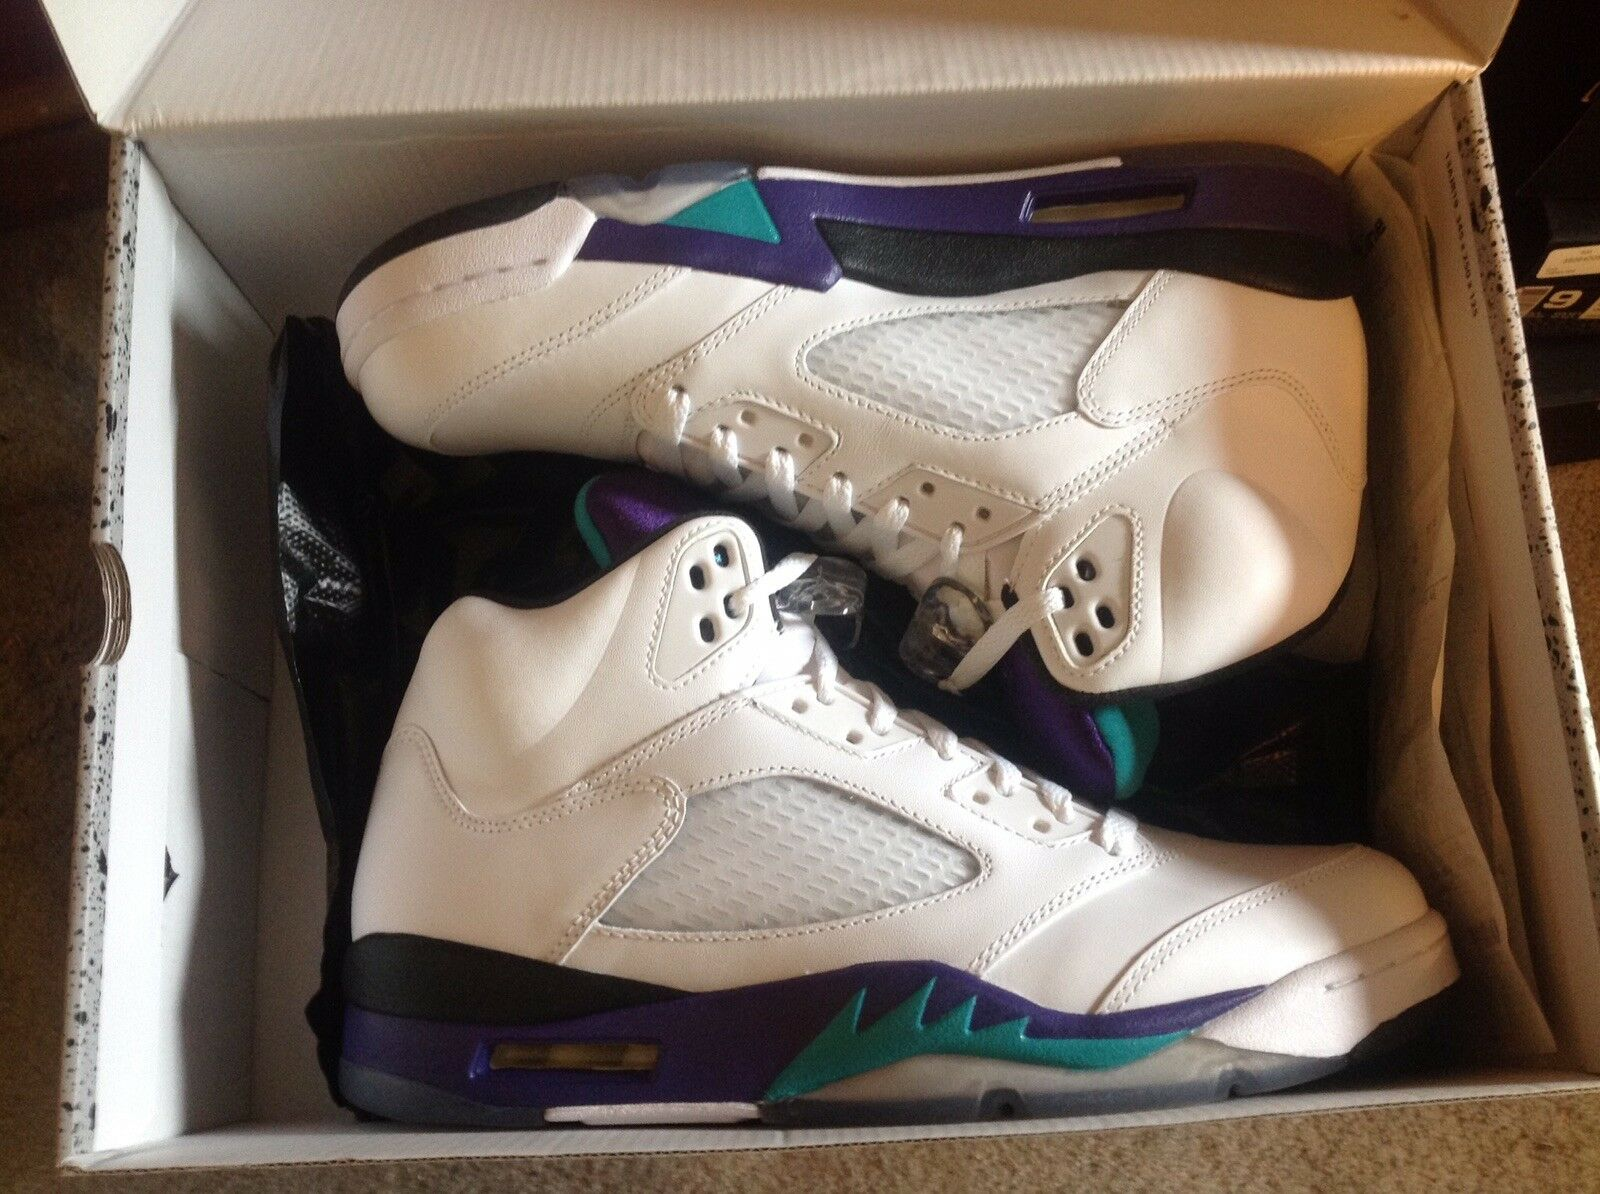 Air Jordan 5 White Grape DS Size 9 W/ Receipt 100% Authentic